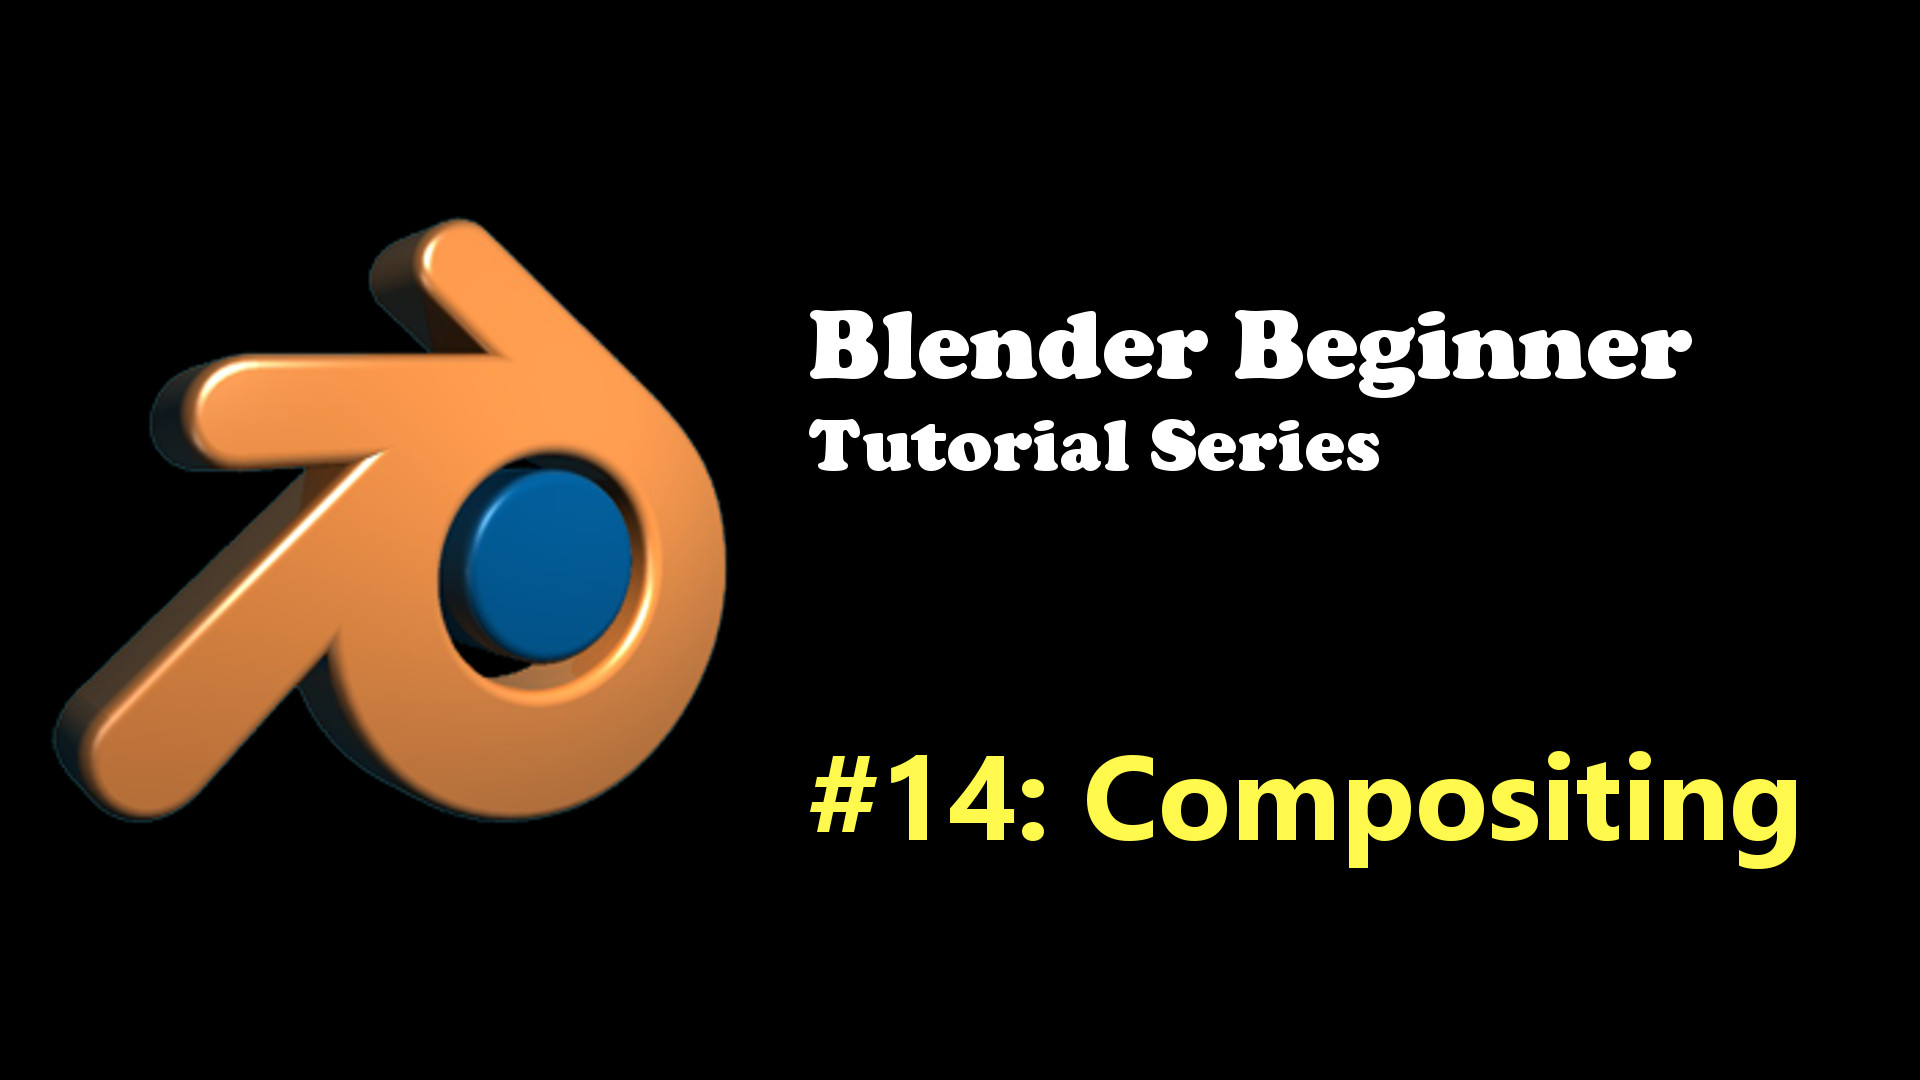 Introduction to Compositing in Blender